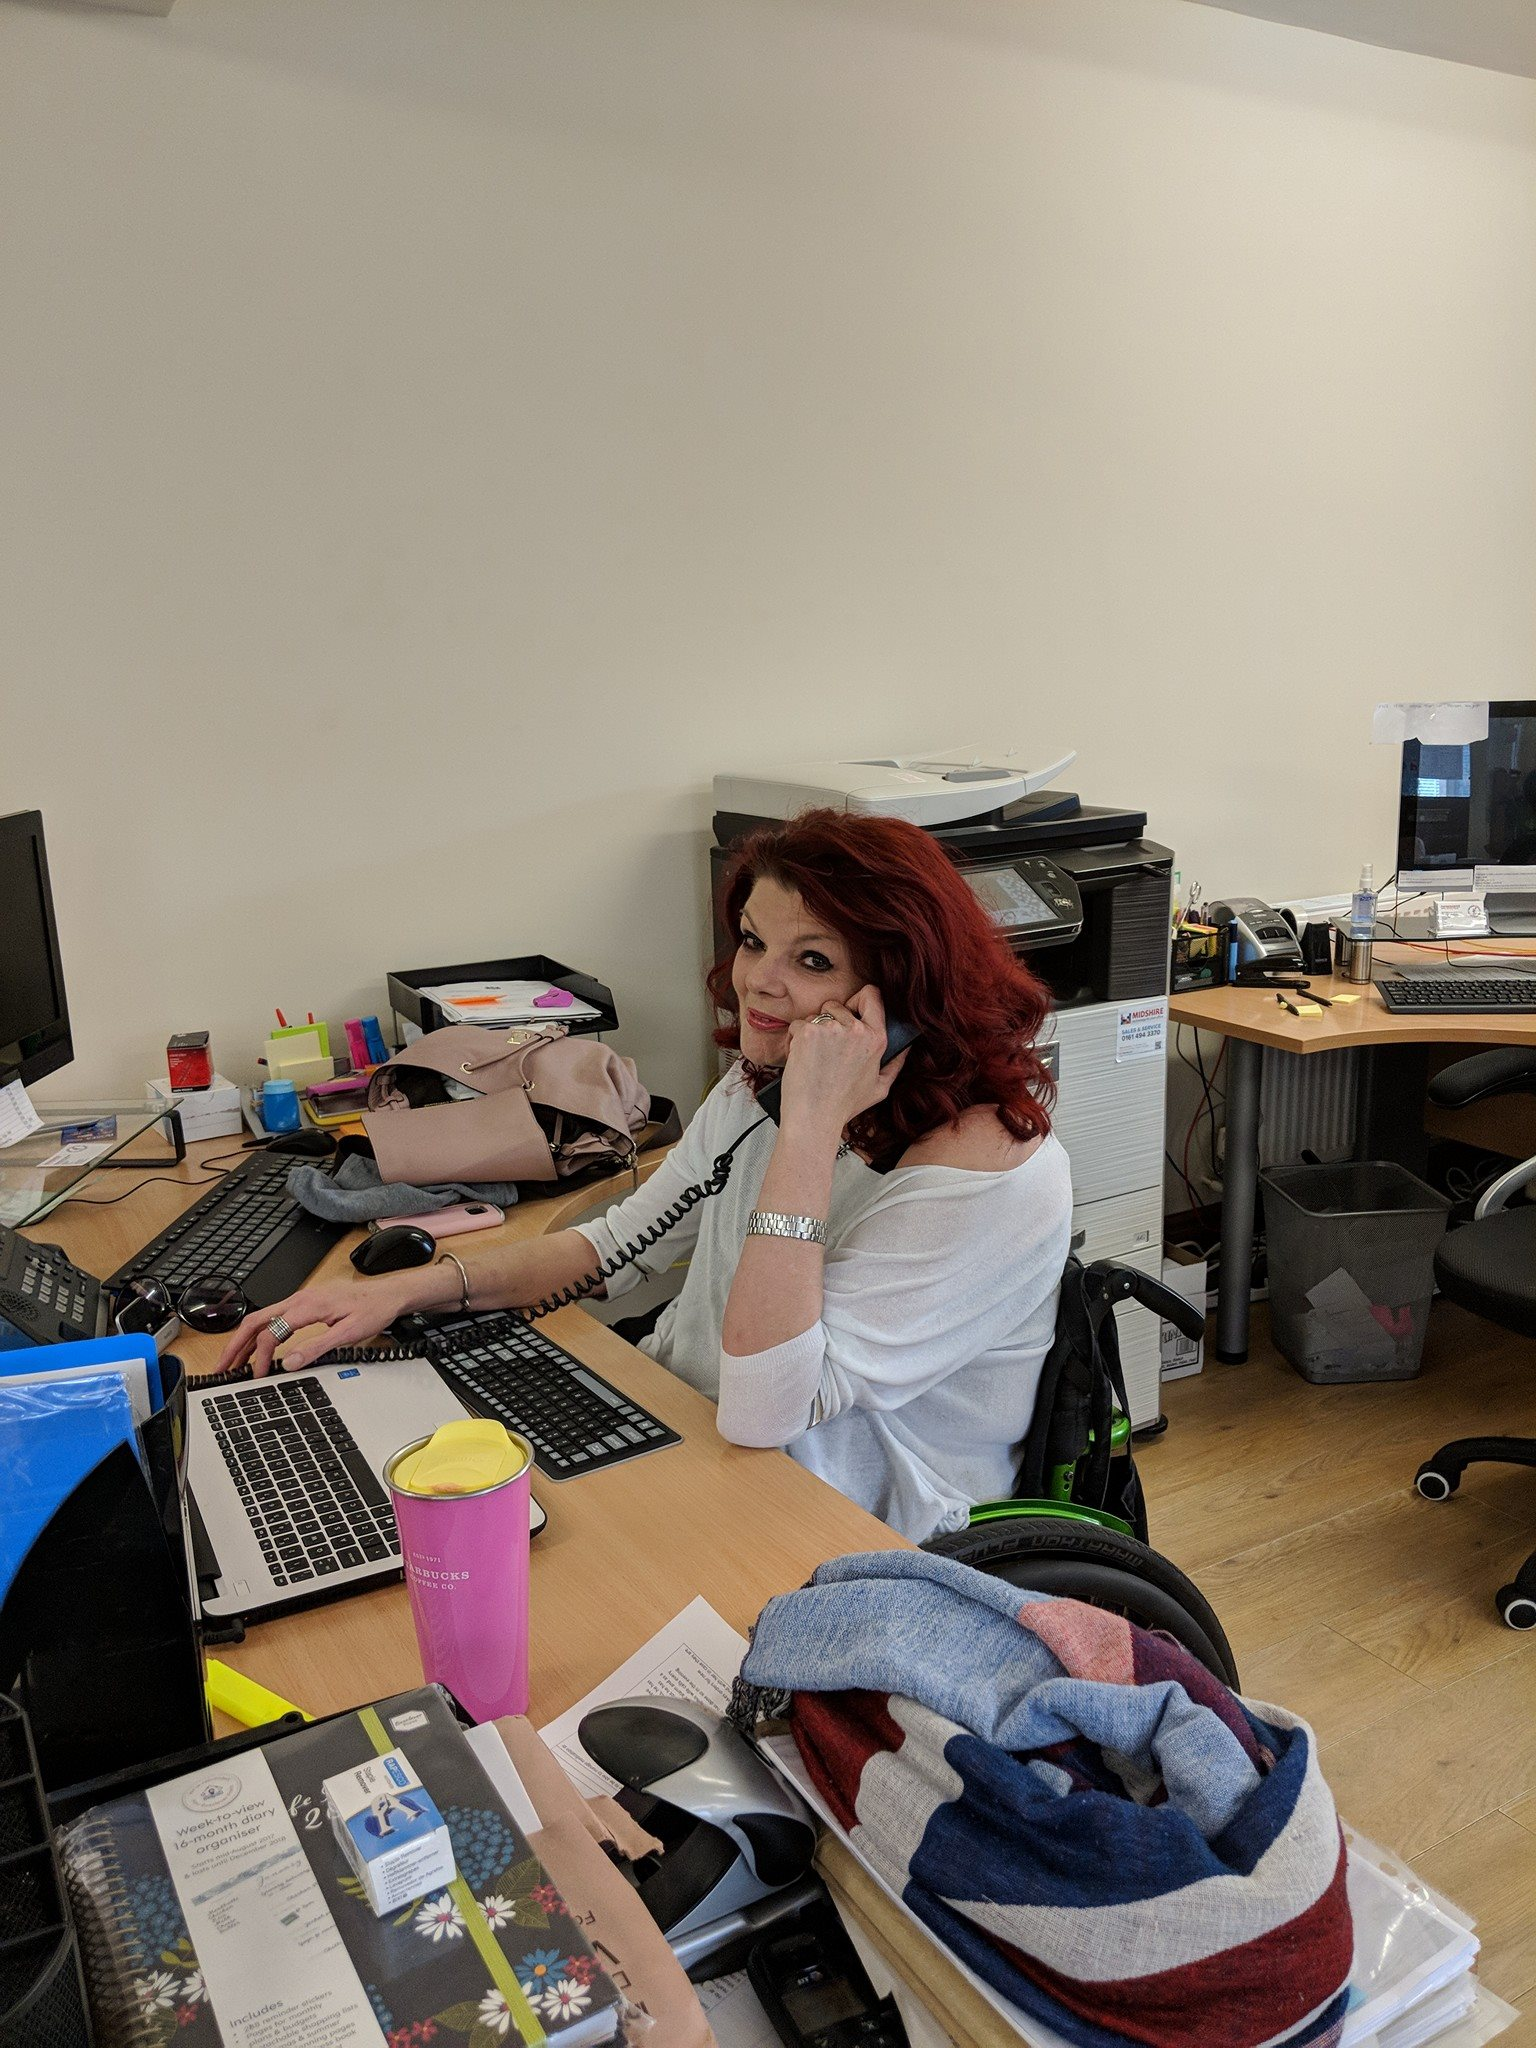 Our lovely Nicky has finally made it back to the office after a long period of illness, it's so good to have her back in to boss us around!